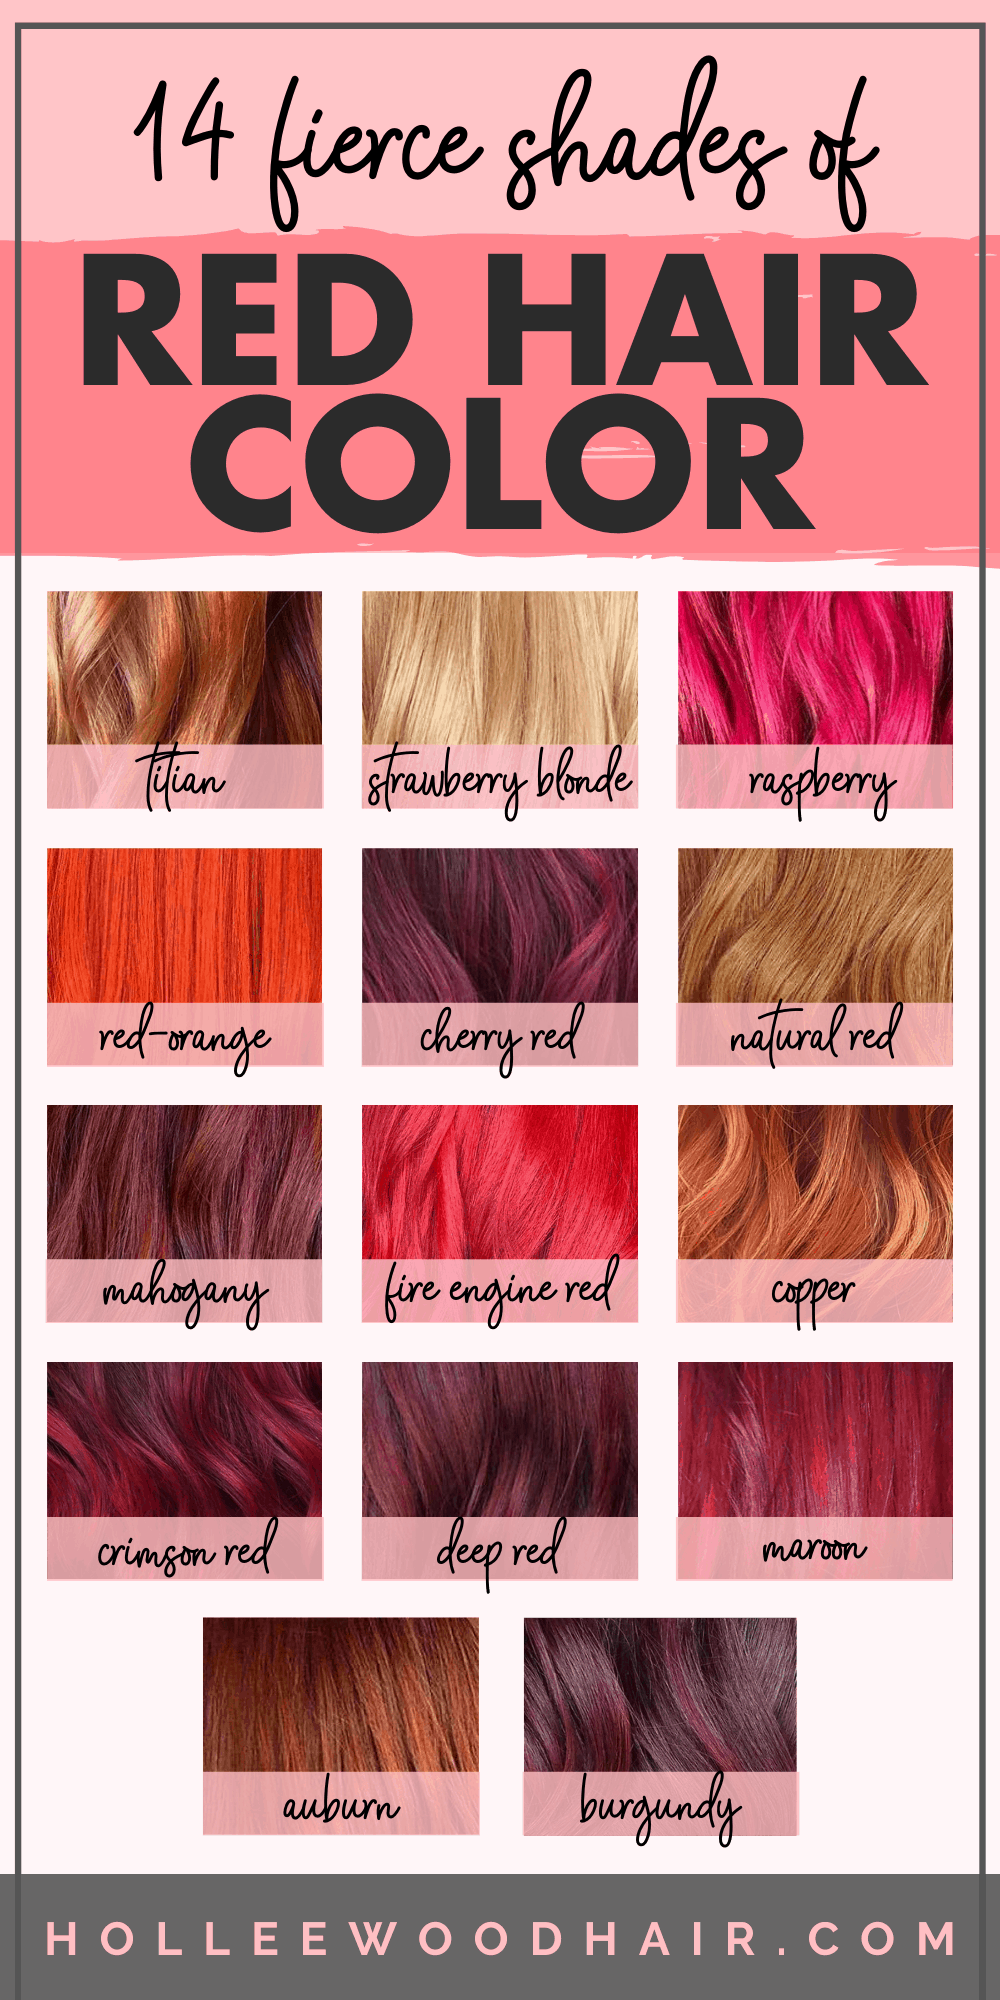 14 Fierce Shades Of Red Hair Color